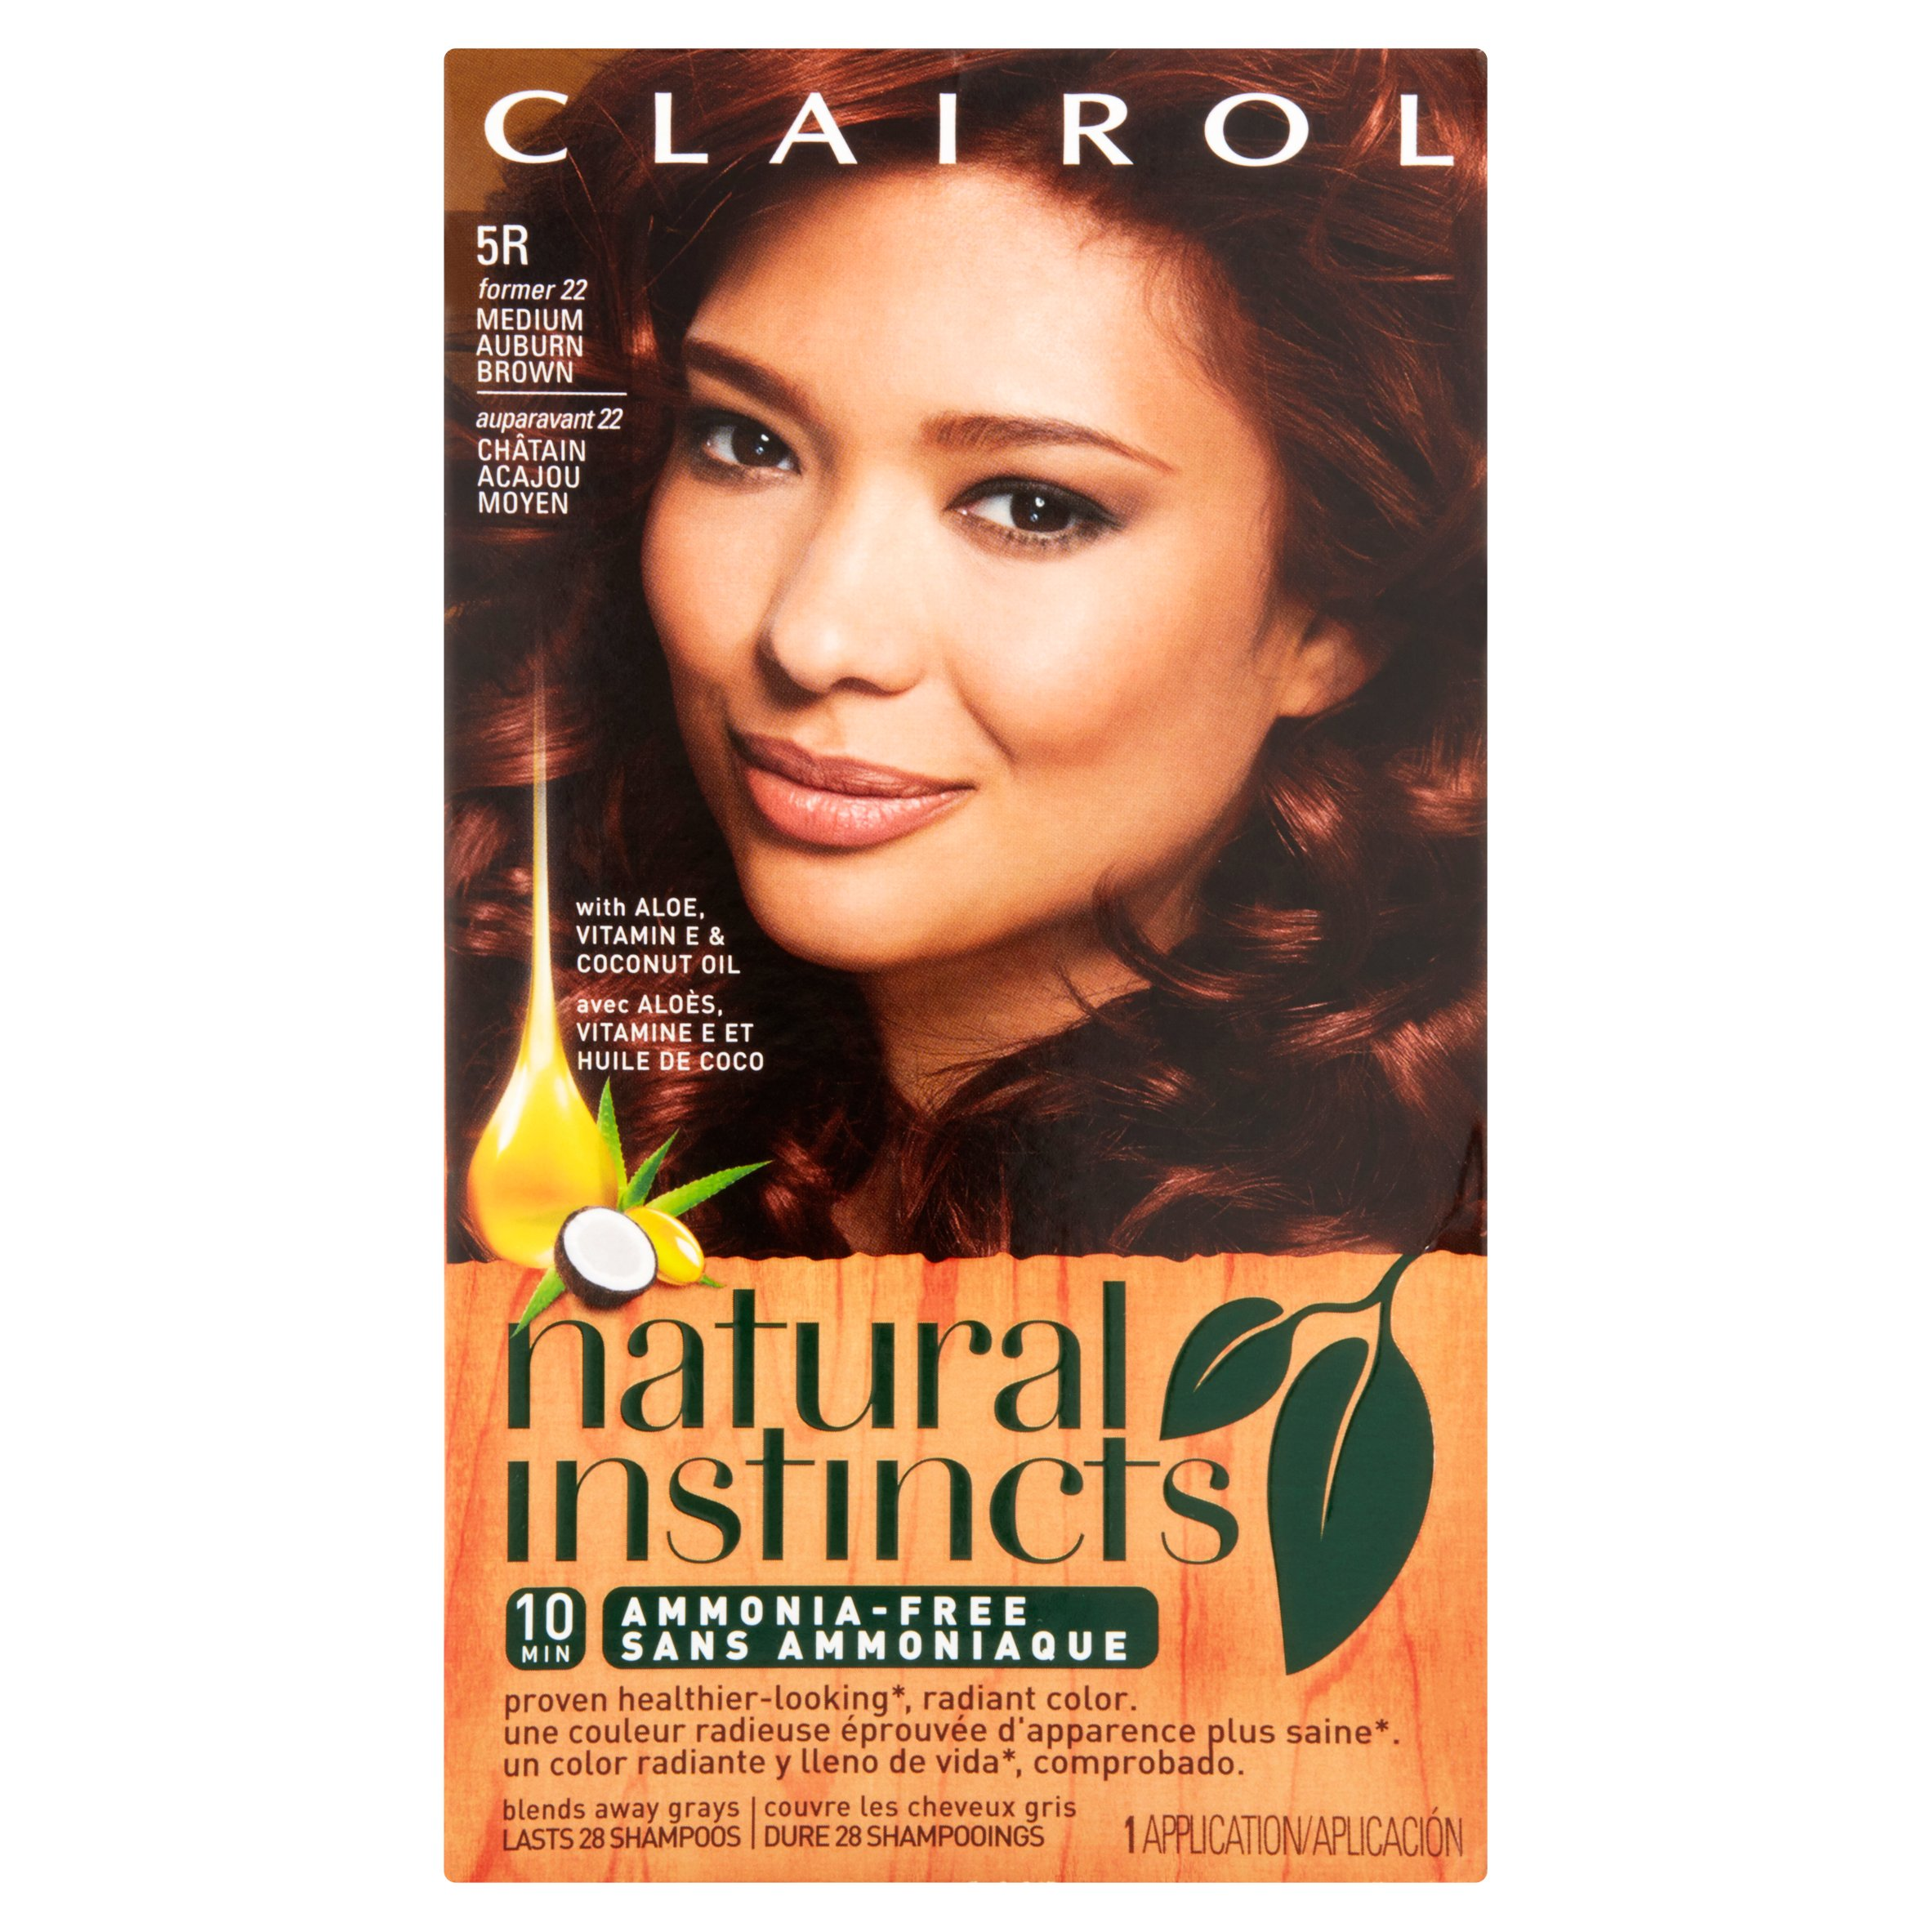 Clairol Natural Instincts Ammonia-Free Hair Color, Light Golden Brown, 1 Kit